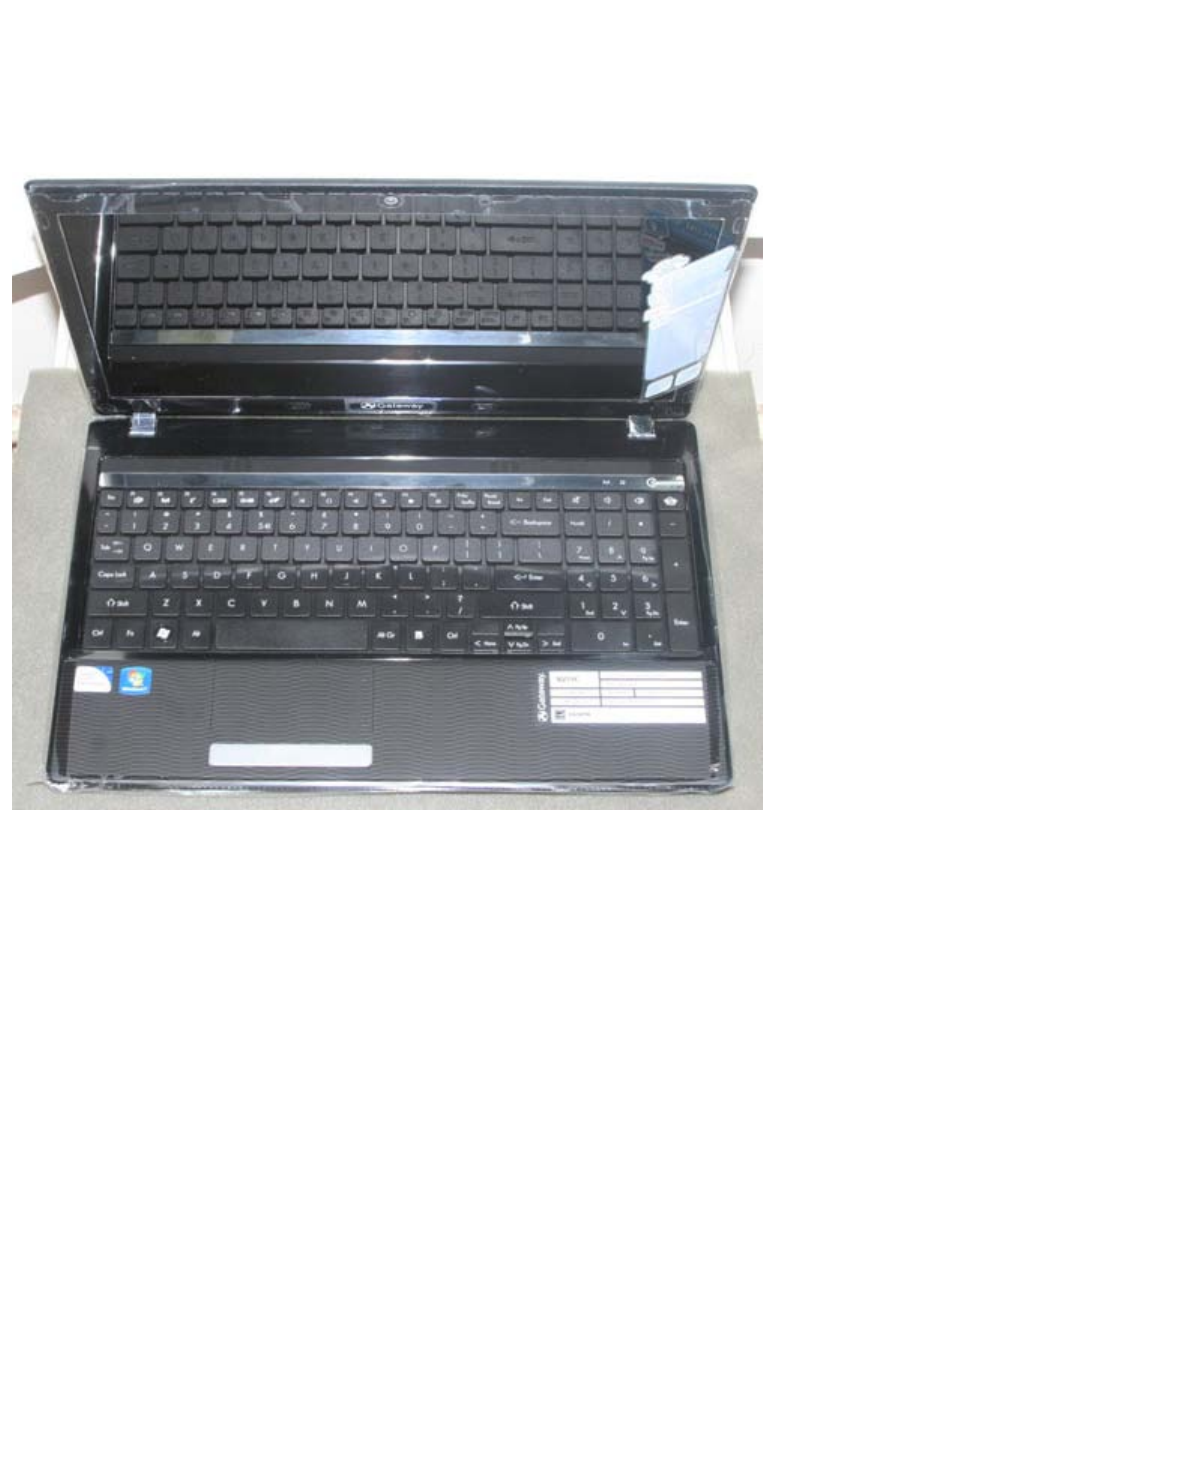 gateway computer keyboard nv53a user guide manualsonline com rh office manualsonline com Gateway Desktop PC Gateway Desktop PC